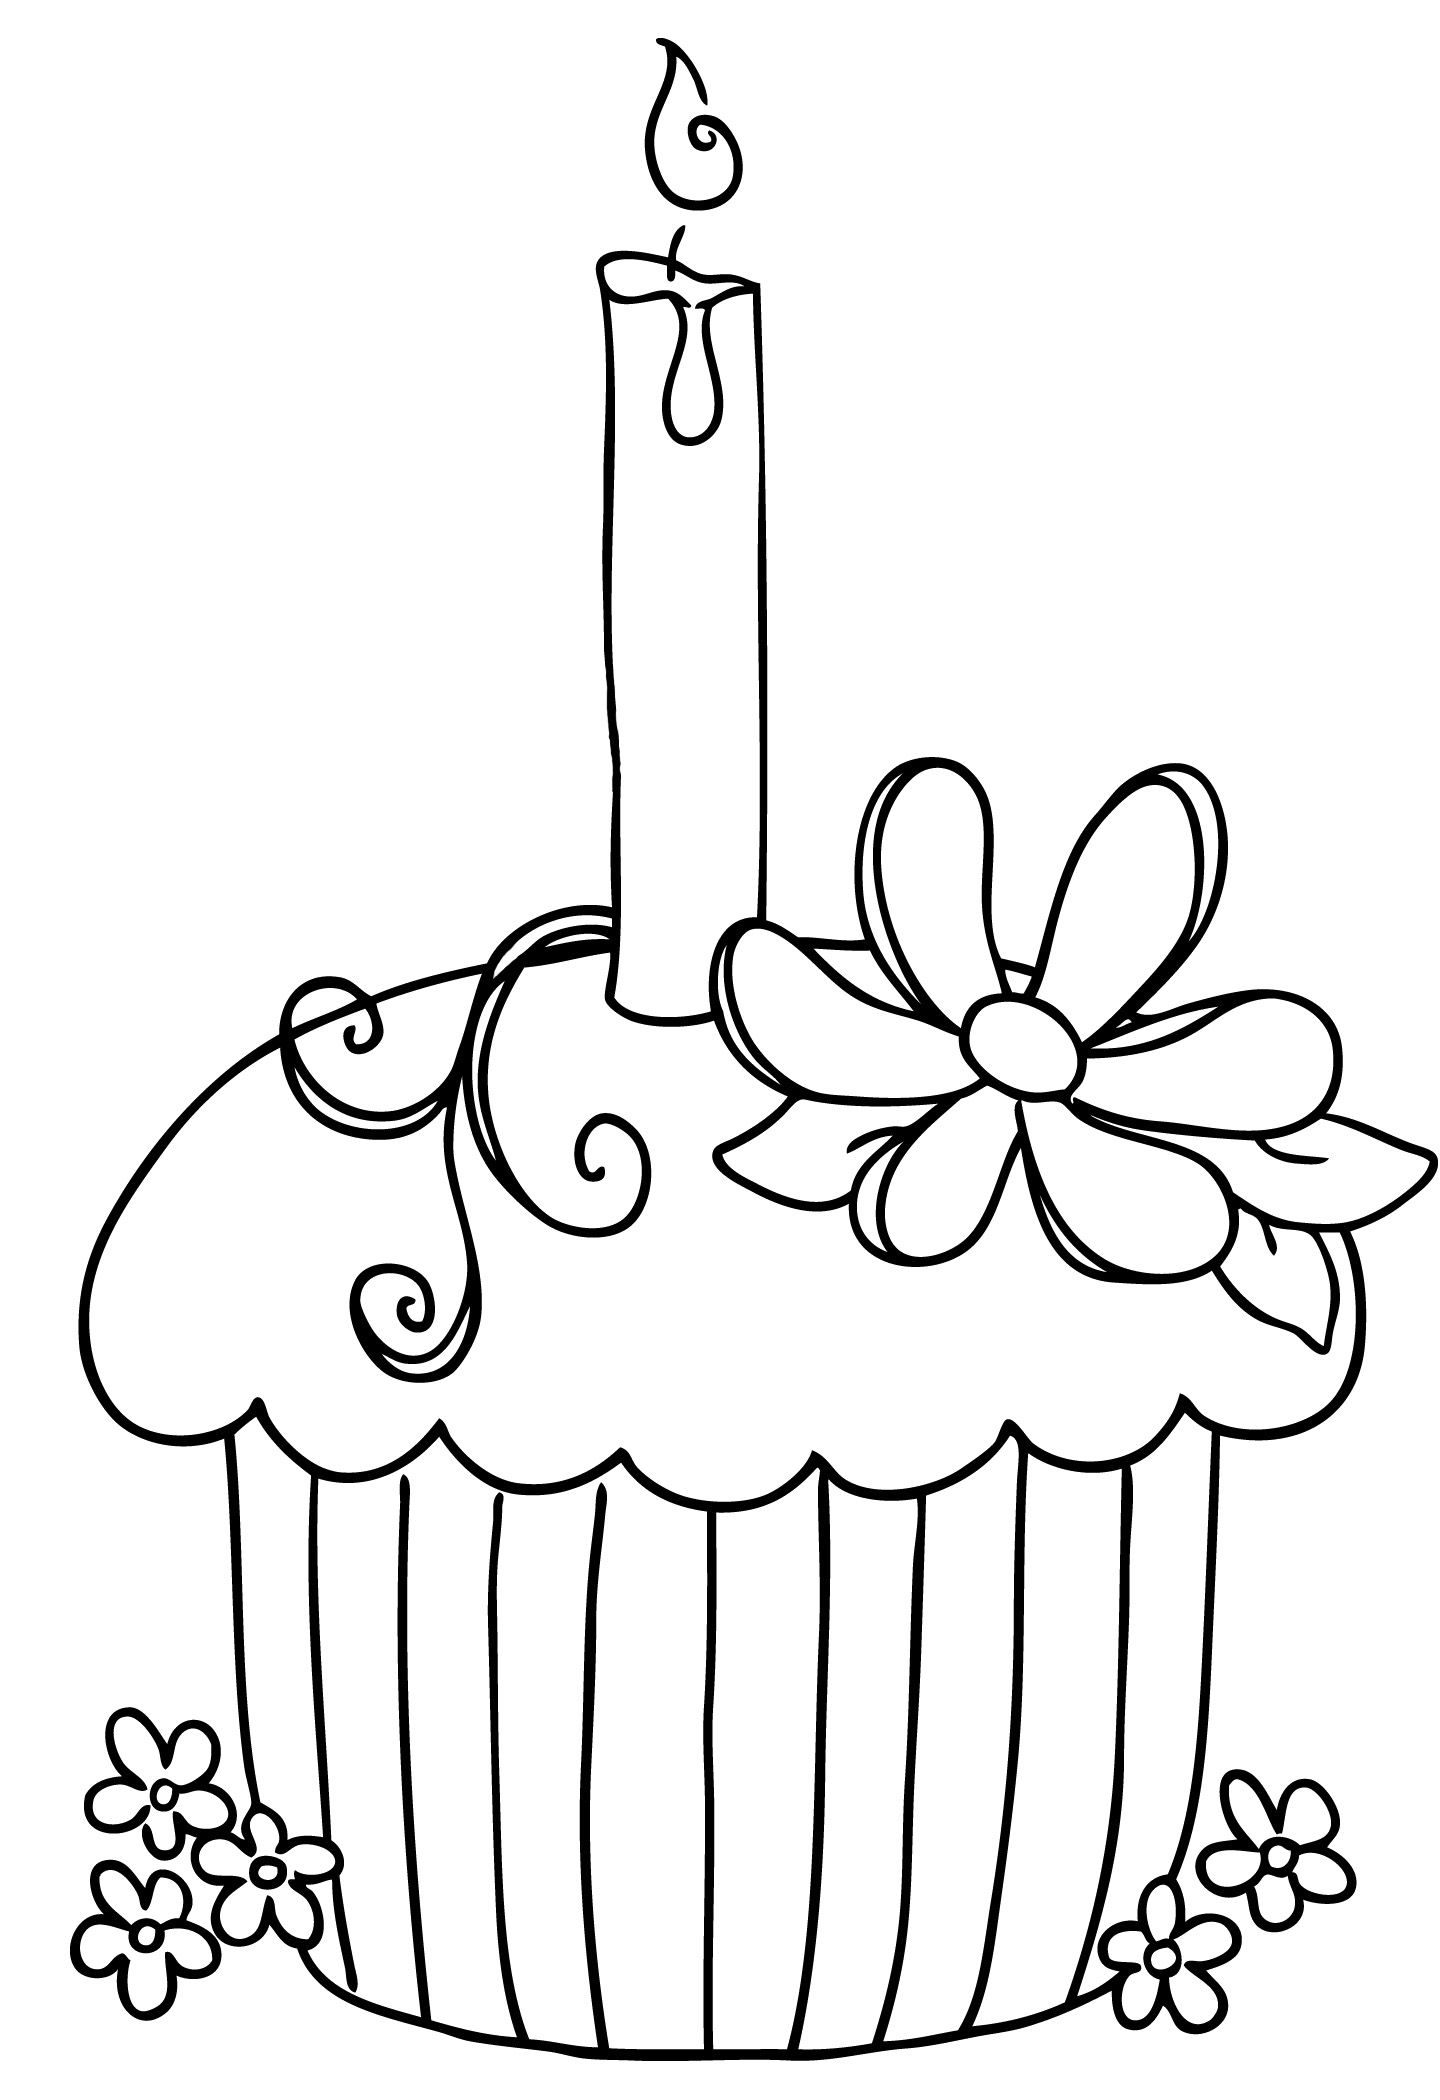 Candle Clipart Black And White